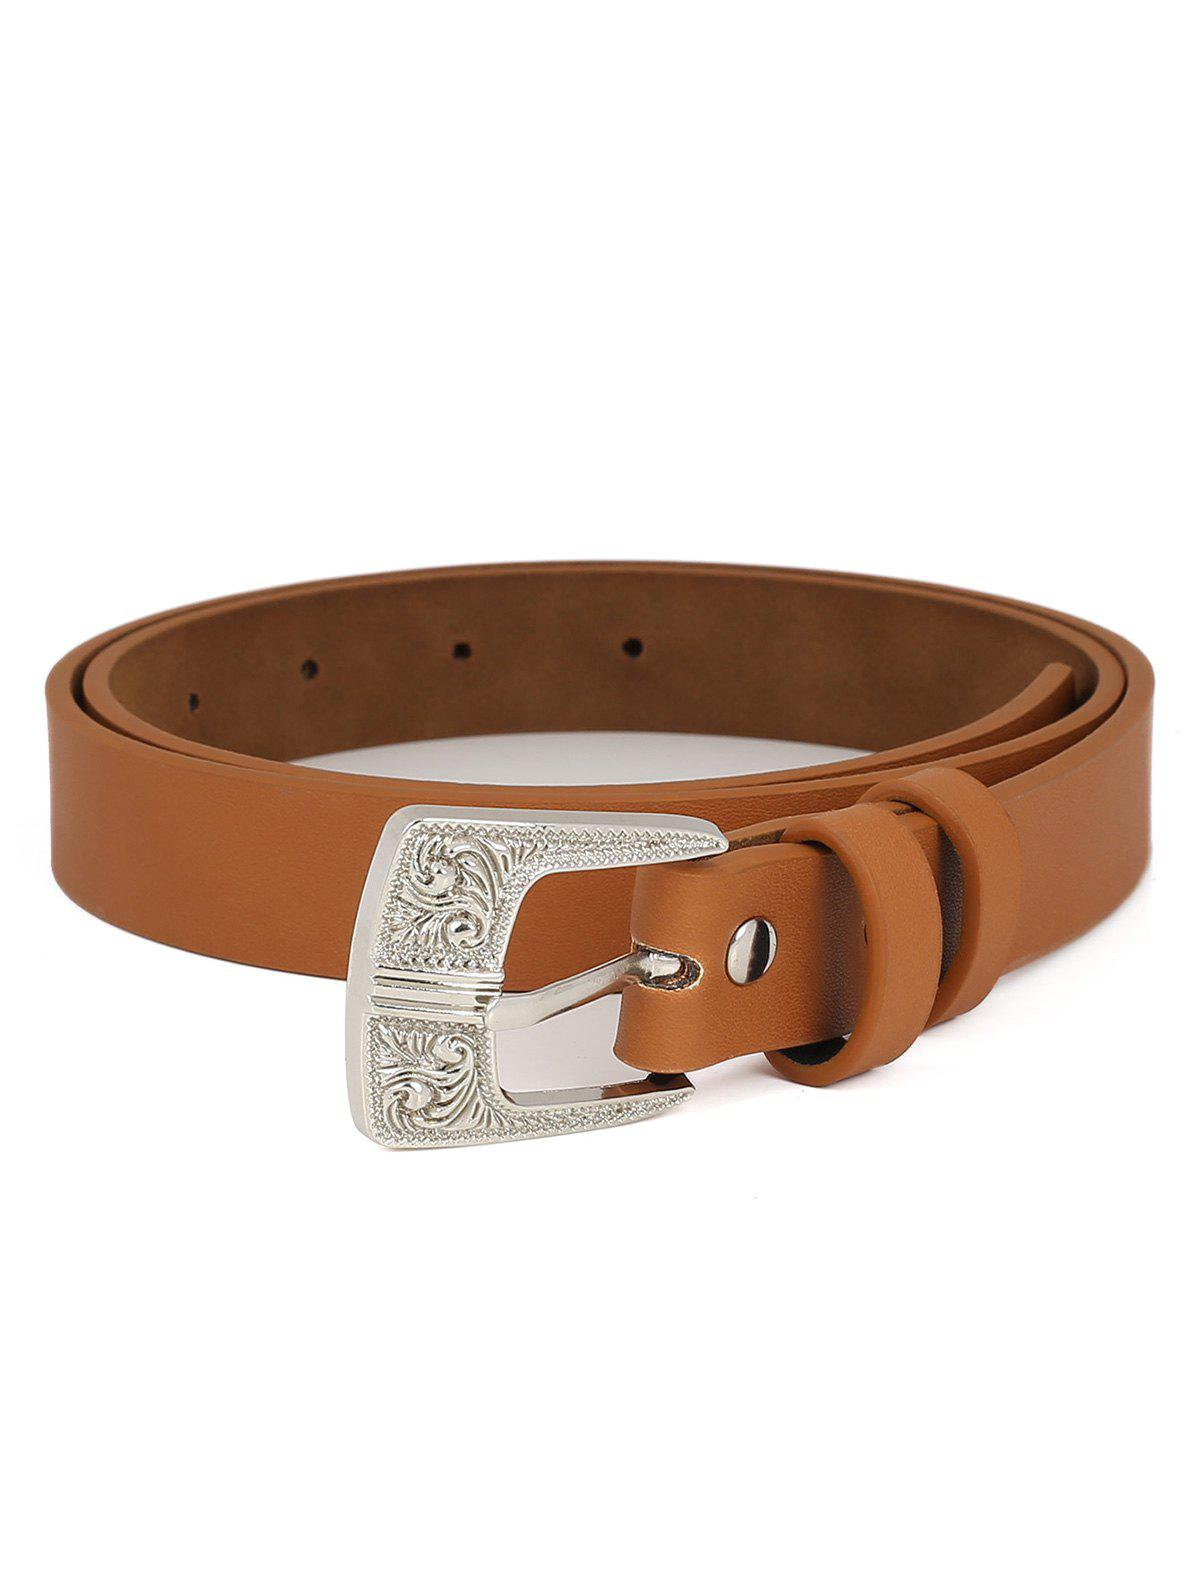 Shop PU Leather Carving Pin Buckle Waist Belt